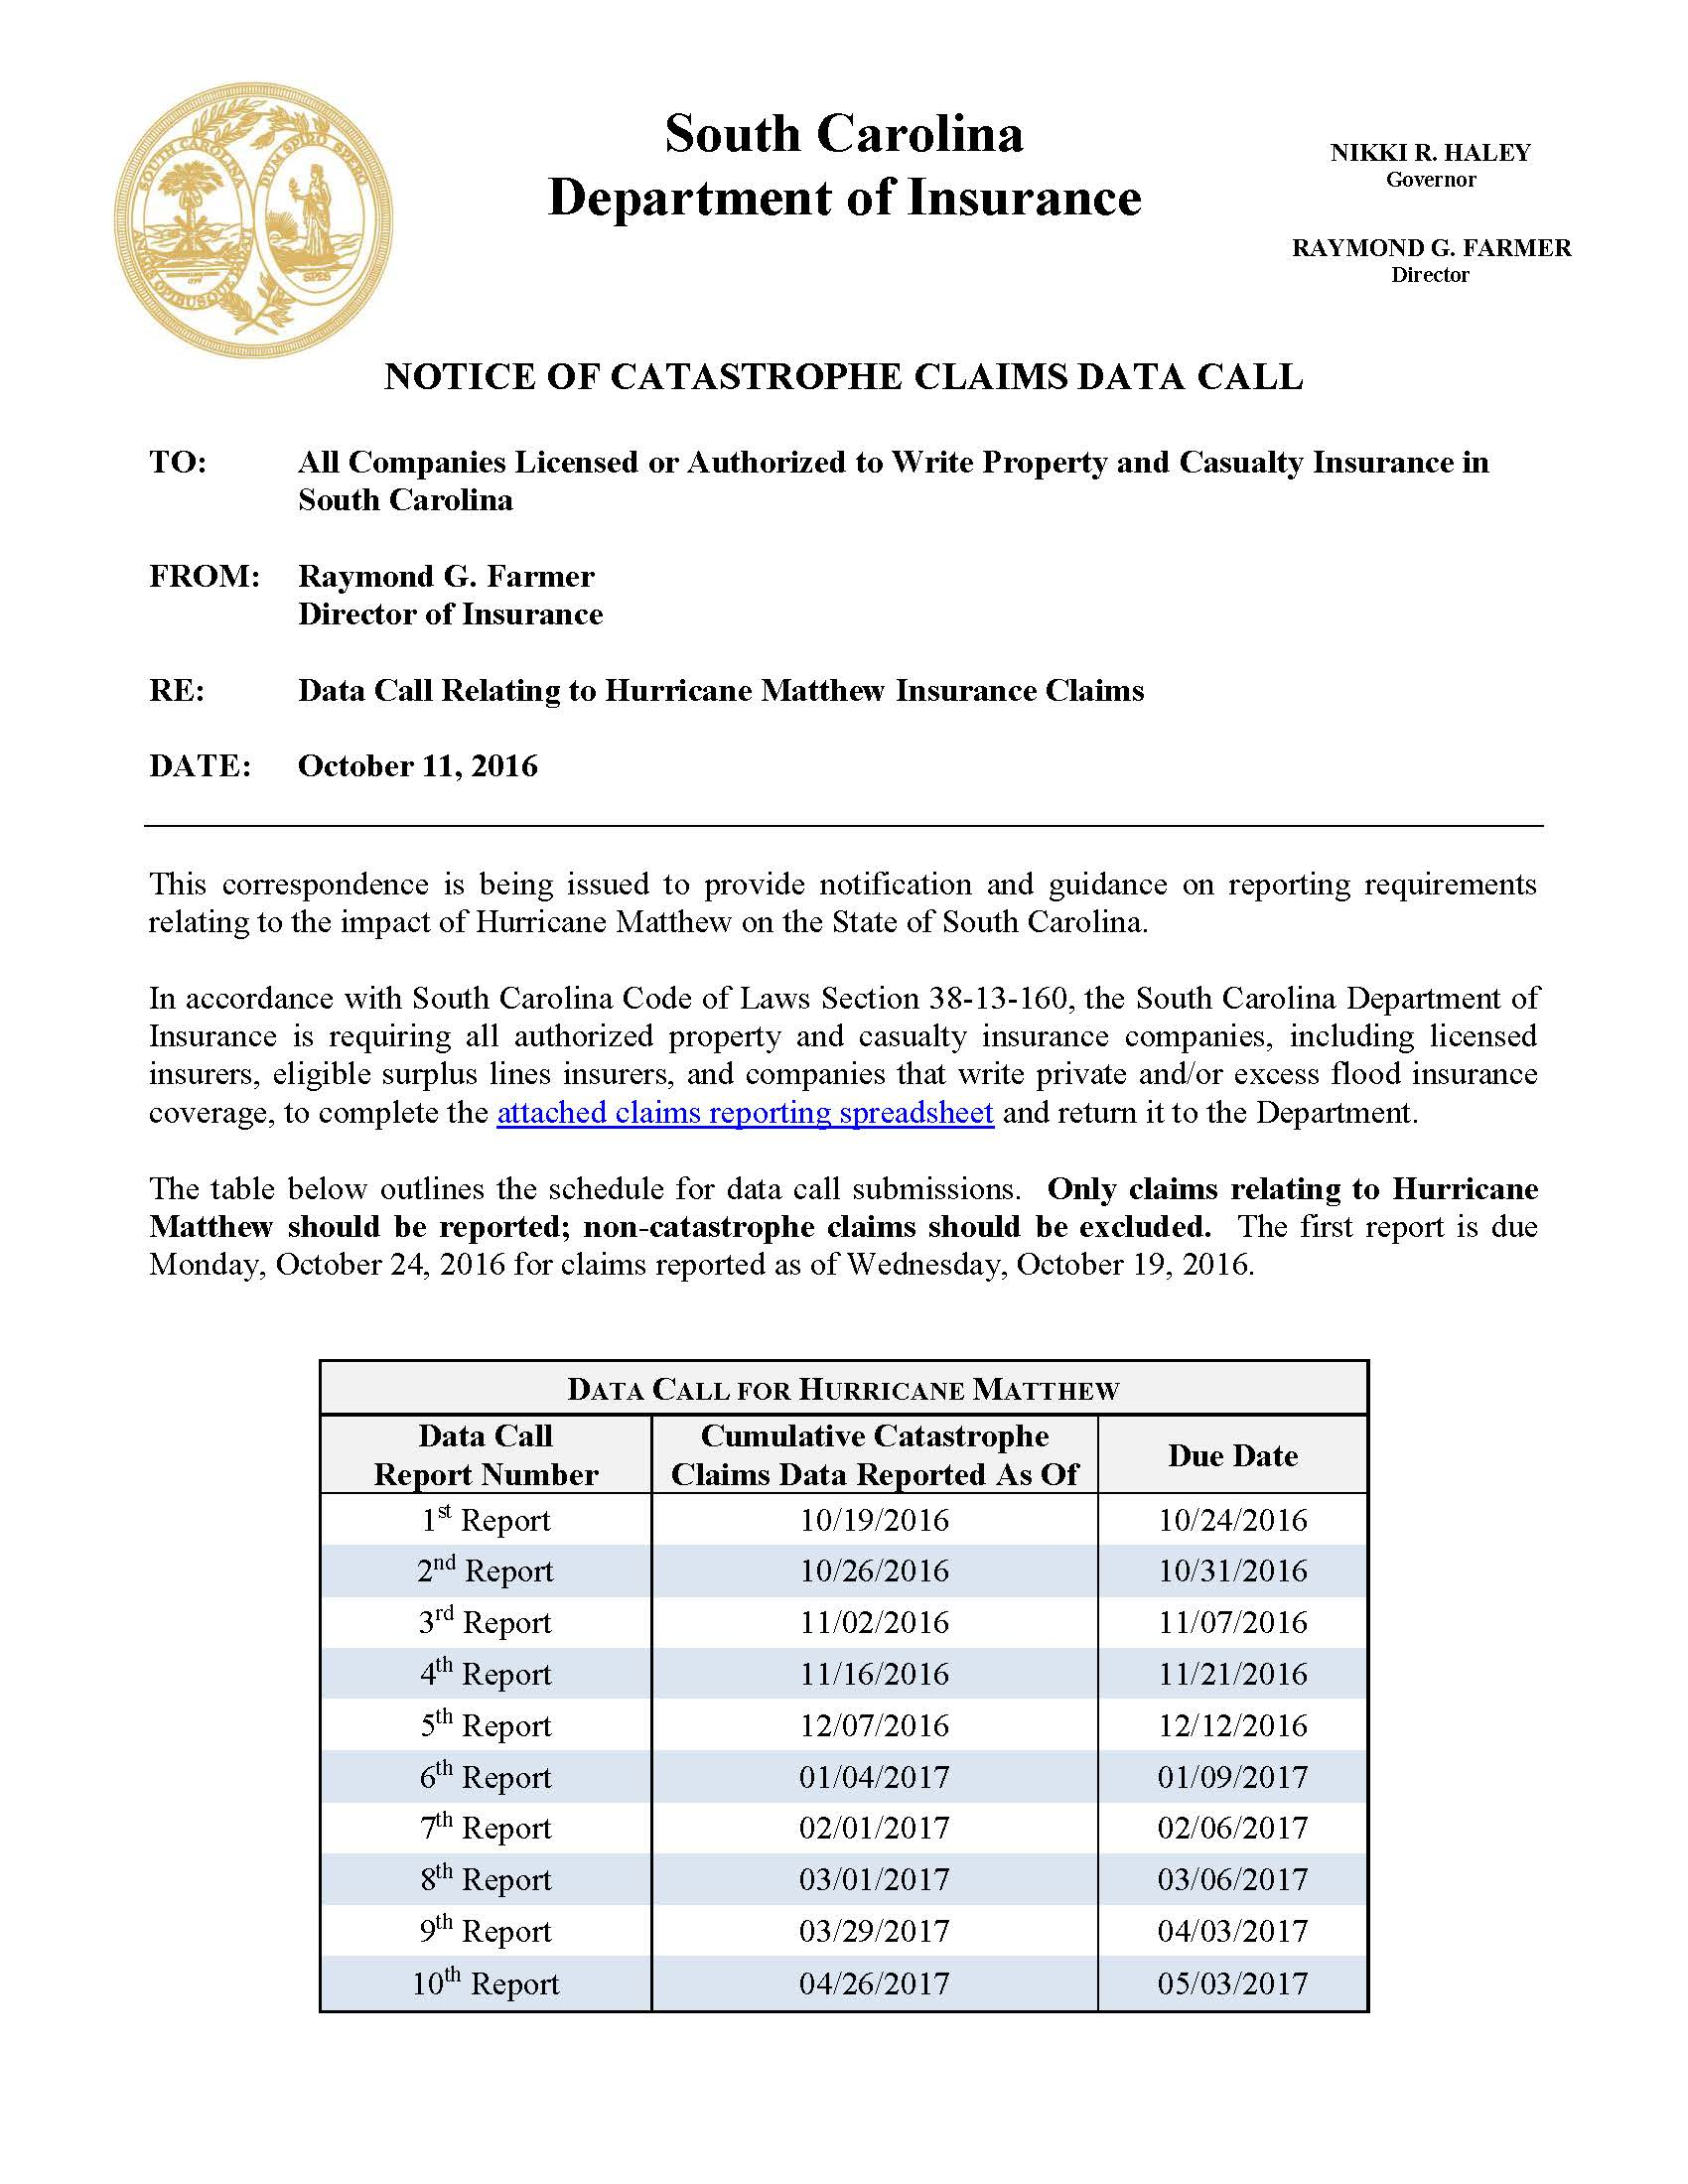 Data Call Relating to Hurricane Matthew Insurance Claims 2016.10.11_Page_1.jpg